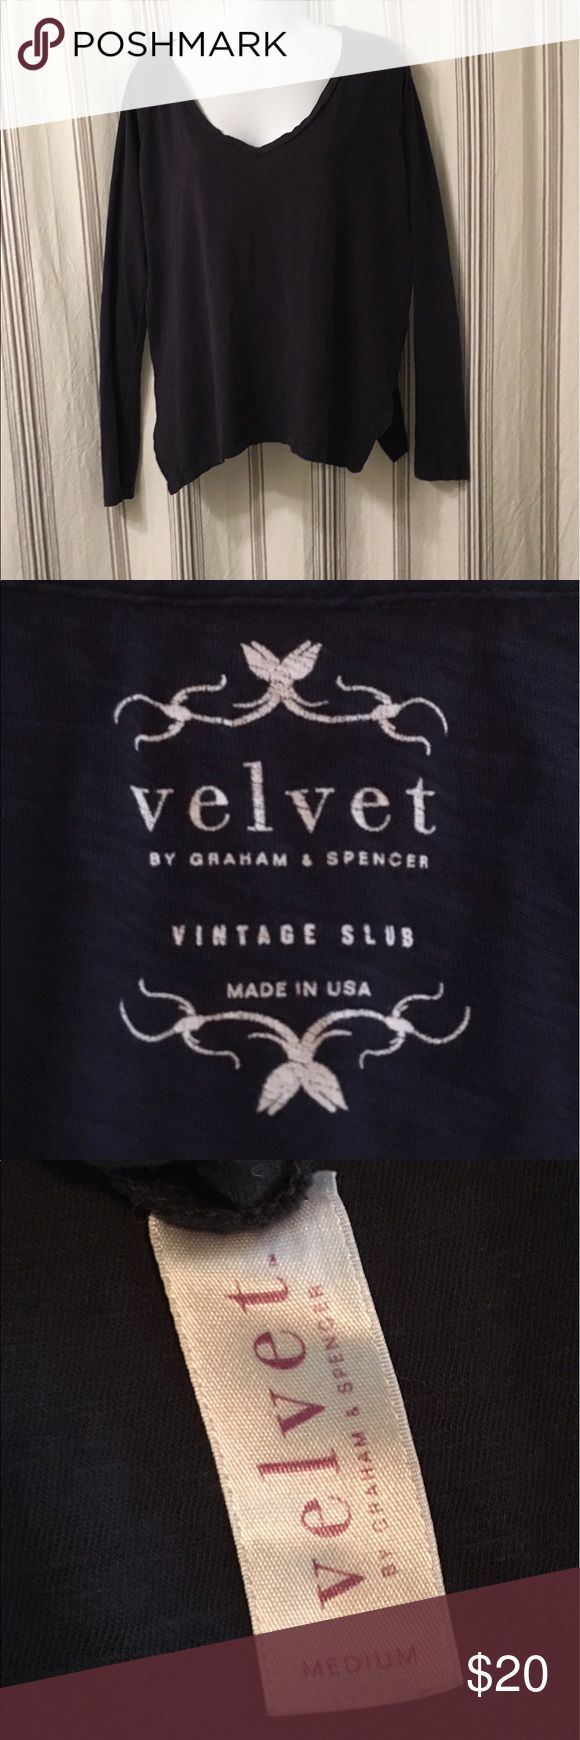 """Velvet by Graham & Spencer shirt! Navy blue Velvet by Graham & Spencer """"vintage slub"""" long sleeve tee. Slits at sides. Beautiful, slouchy tee. Worn once, great condition! Velvet Tops Tees - Long Sleeve"""